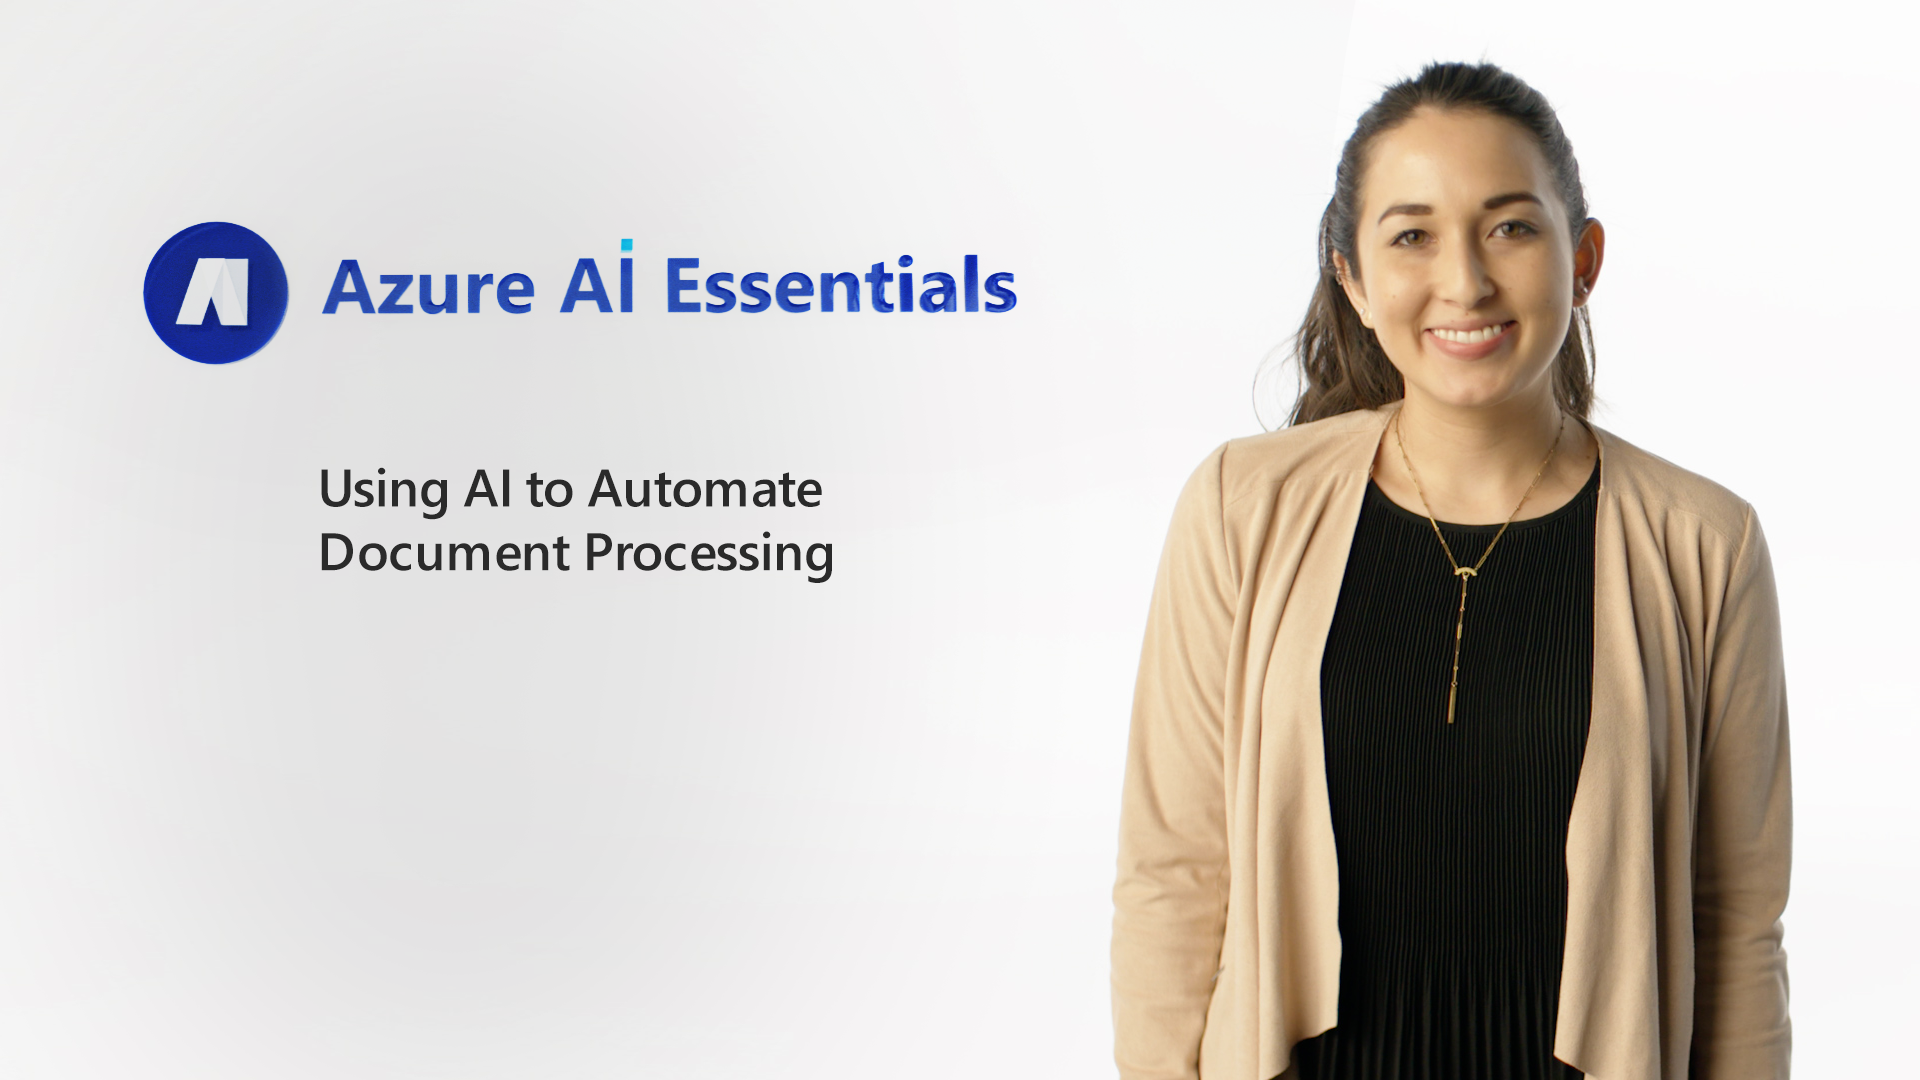 Use AI to Automate Document Processing